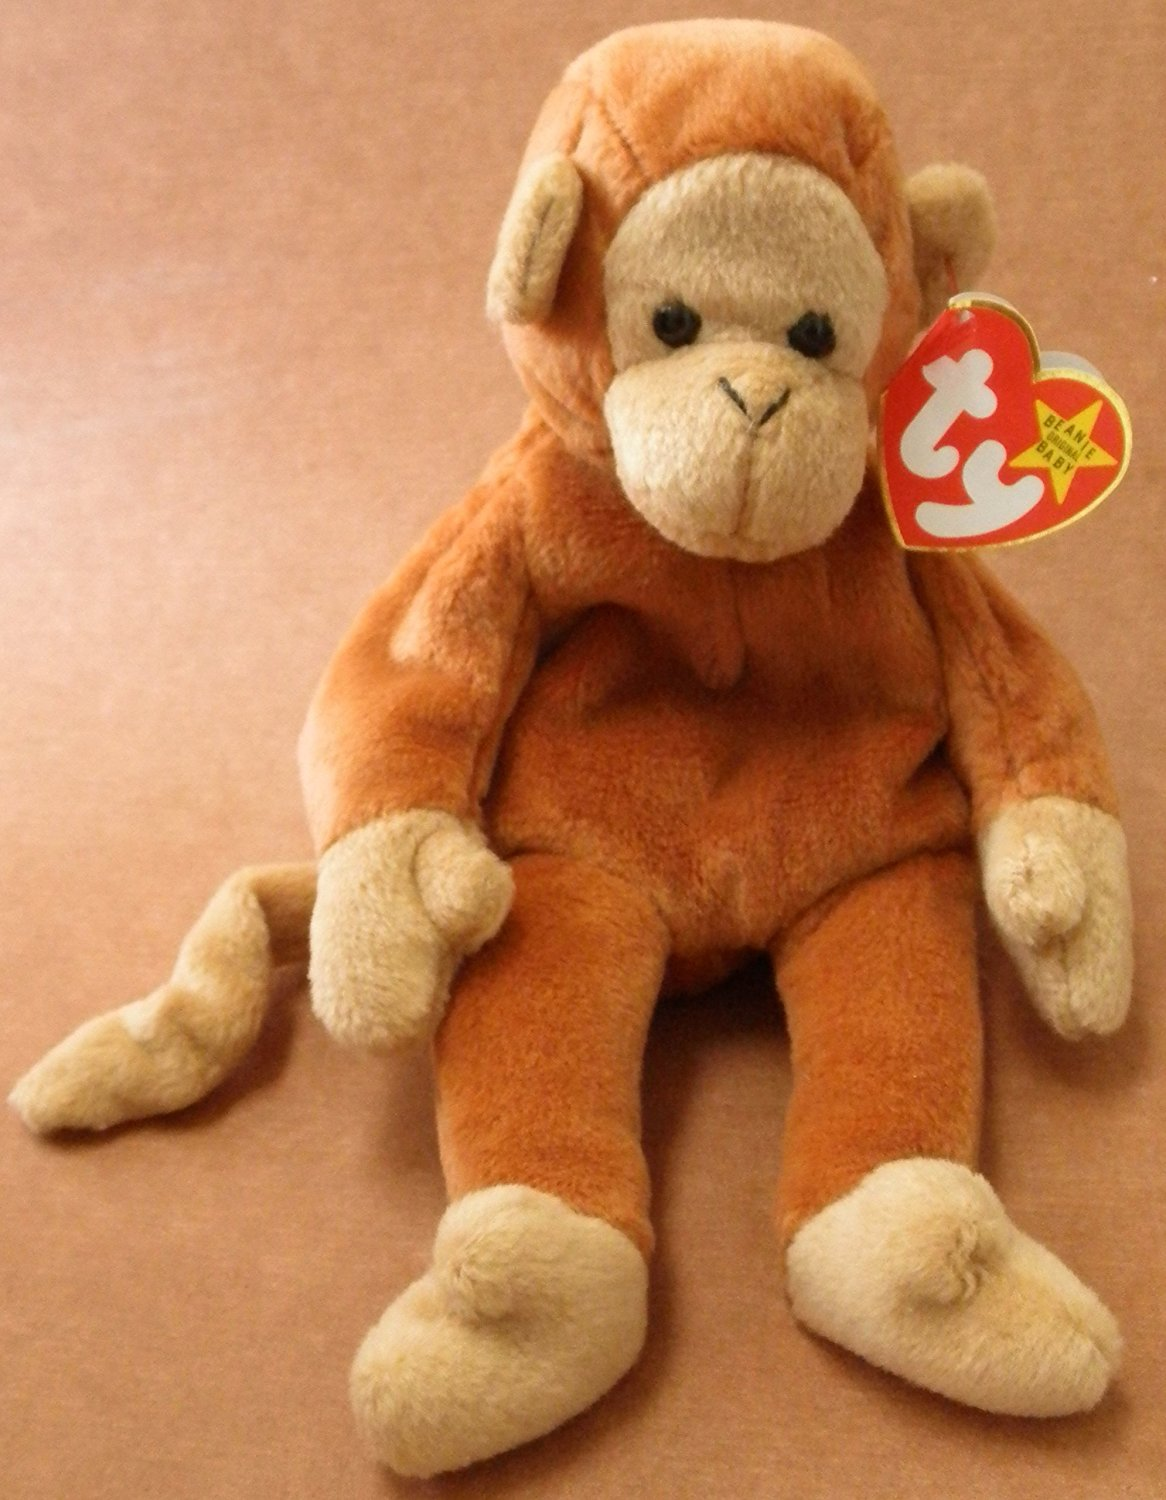 TY Beanie Babies Bongo the Monkey Stuffed Animal Plush Toy - 9 inches tall 57d59a31df0